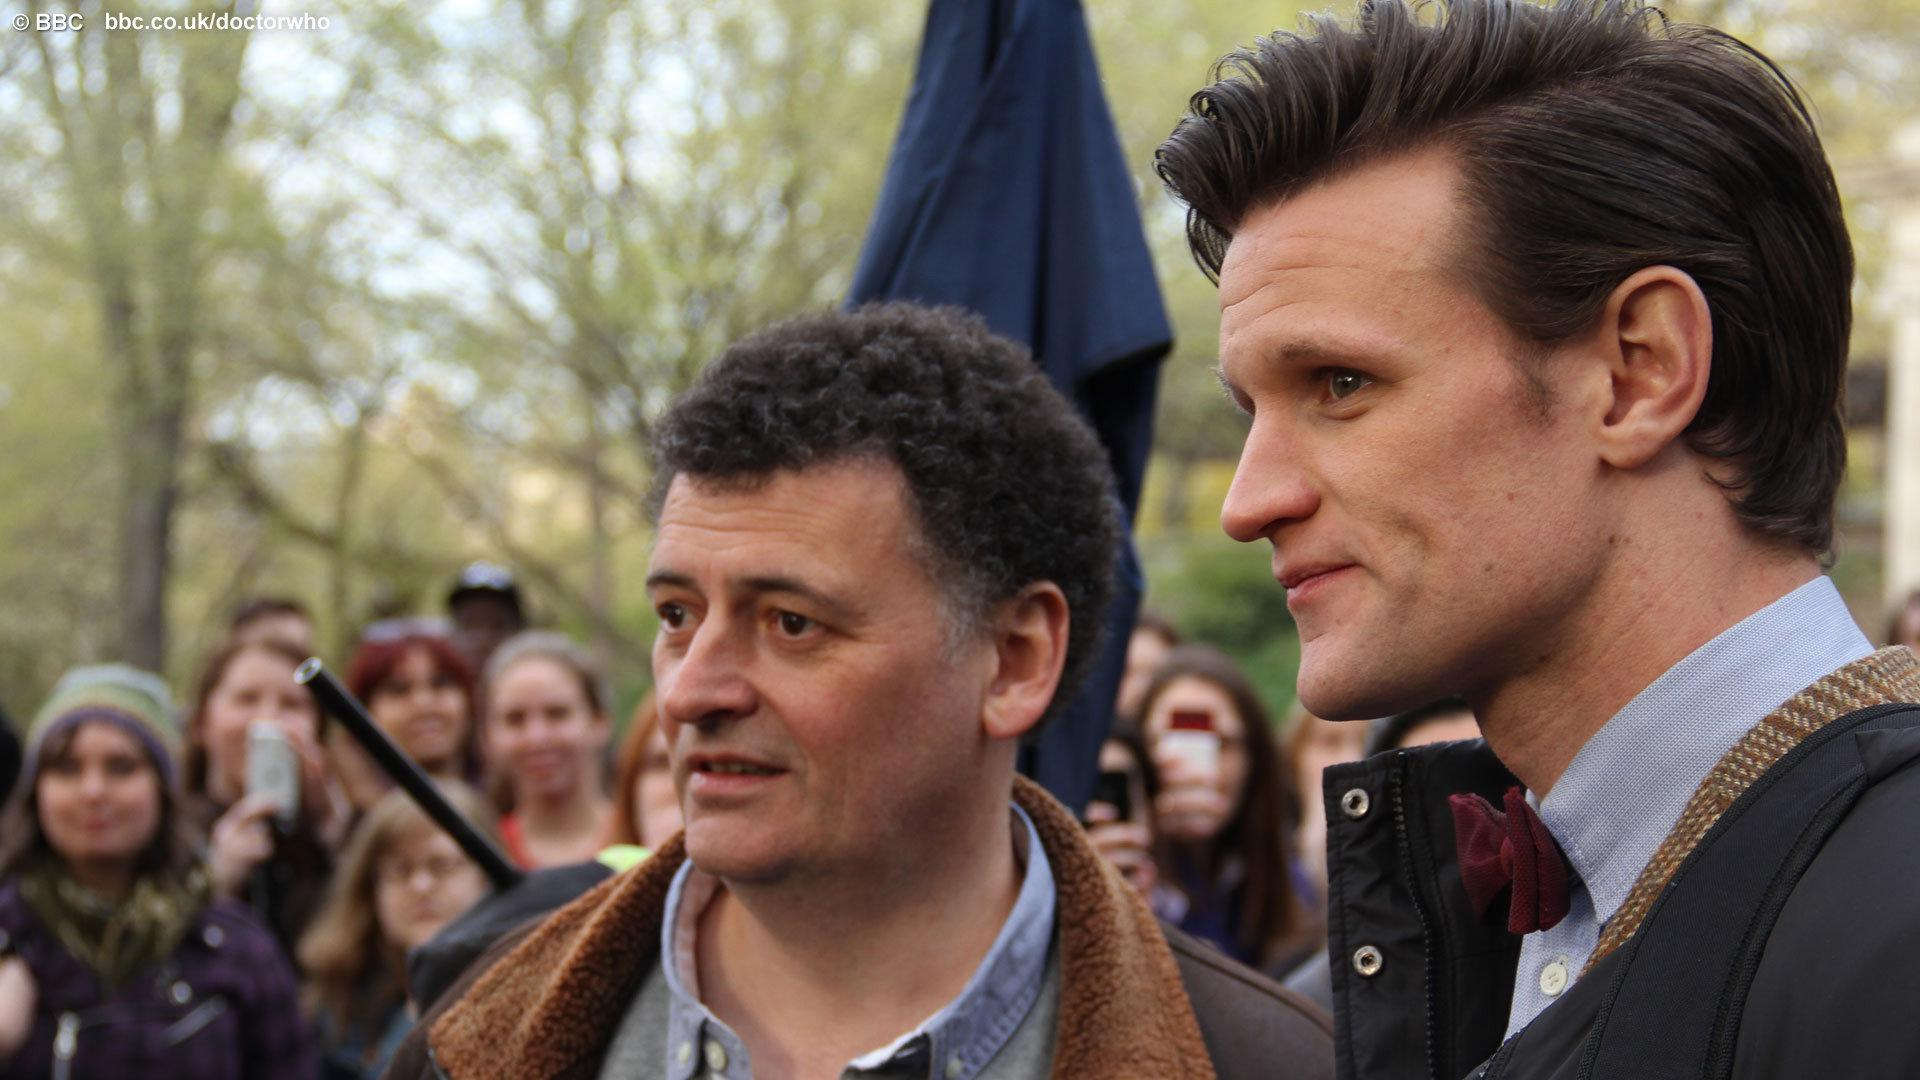 Executive Producer and lead writer, Steven Moffat with Matt Smith. Photo: BBC